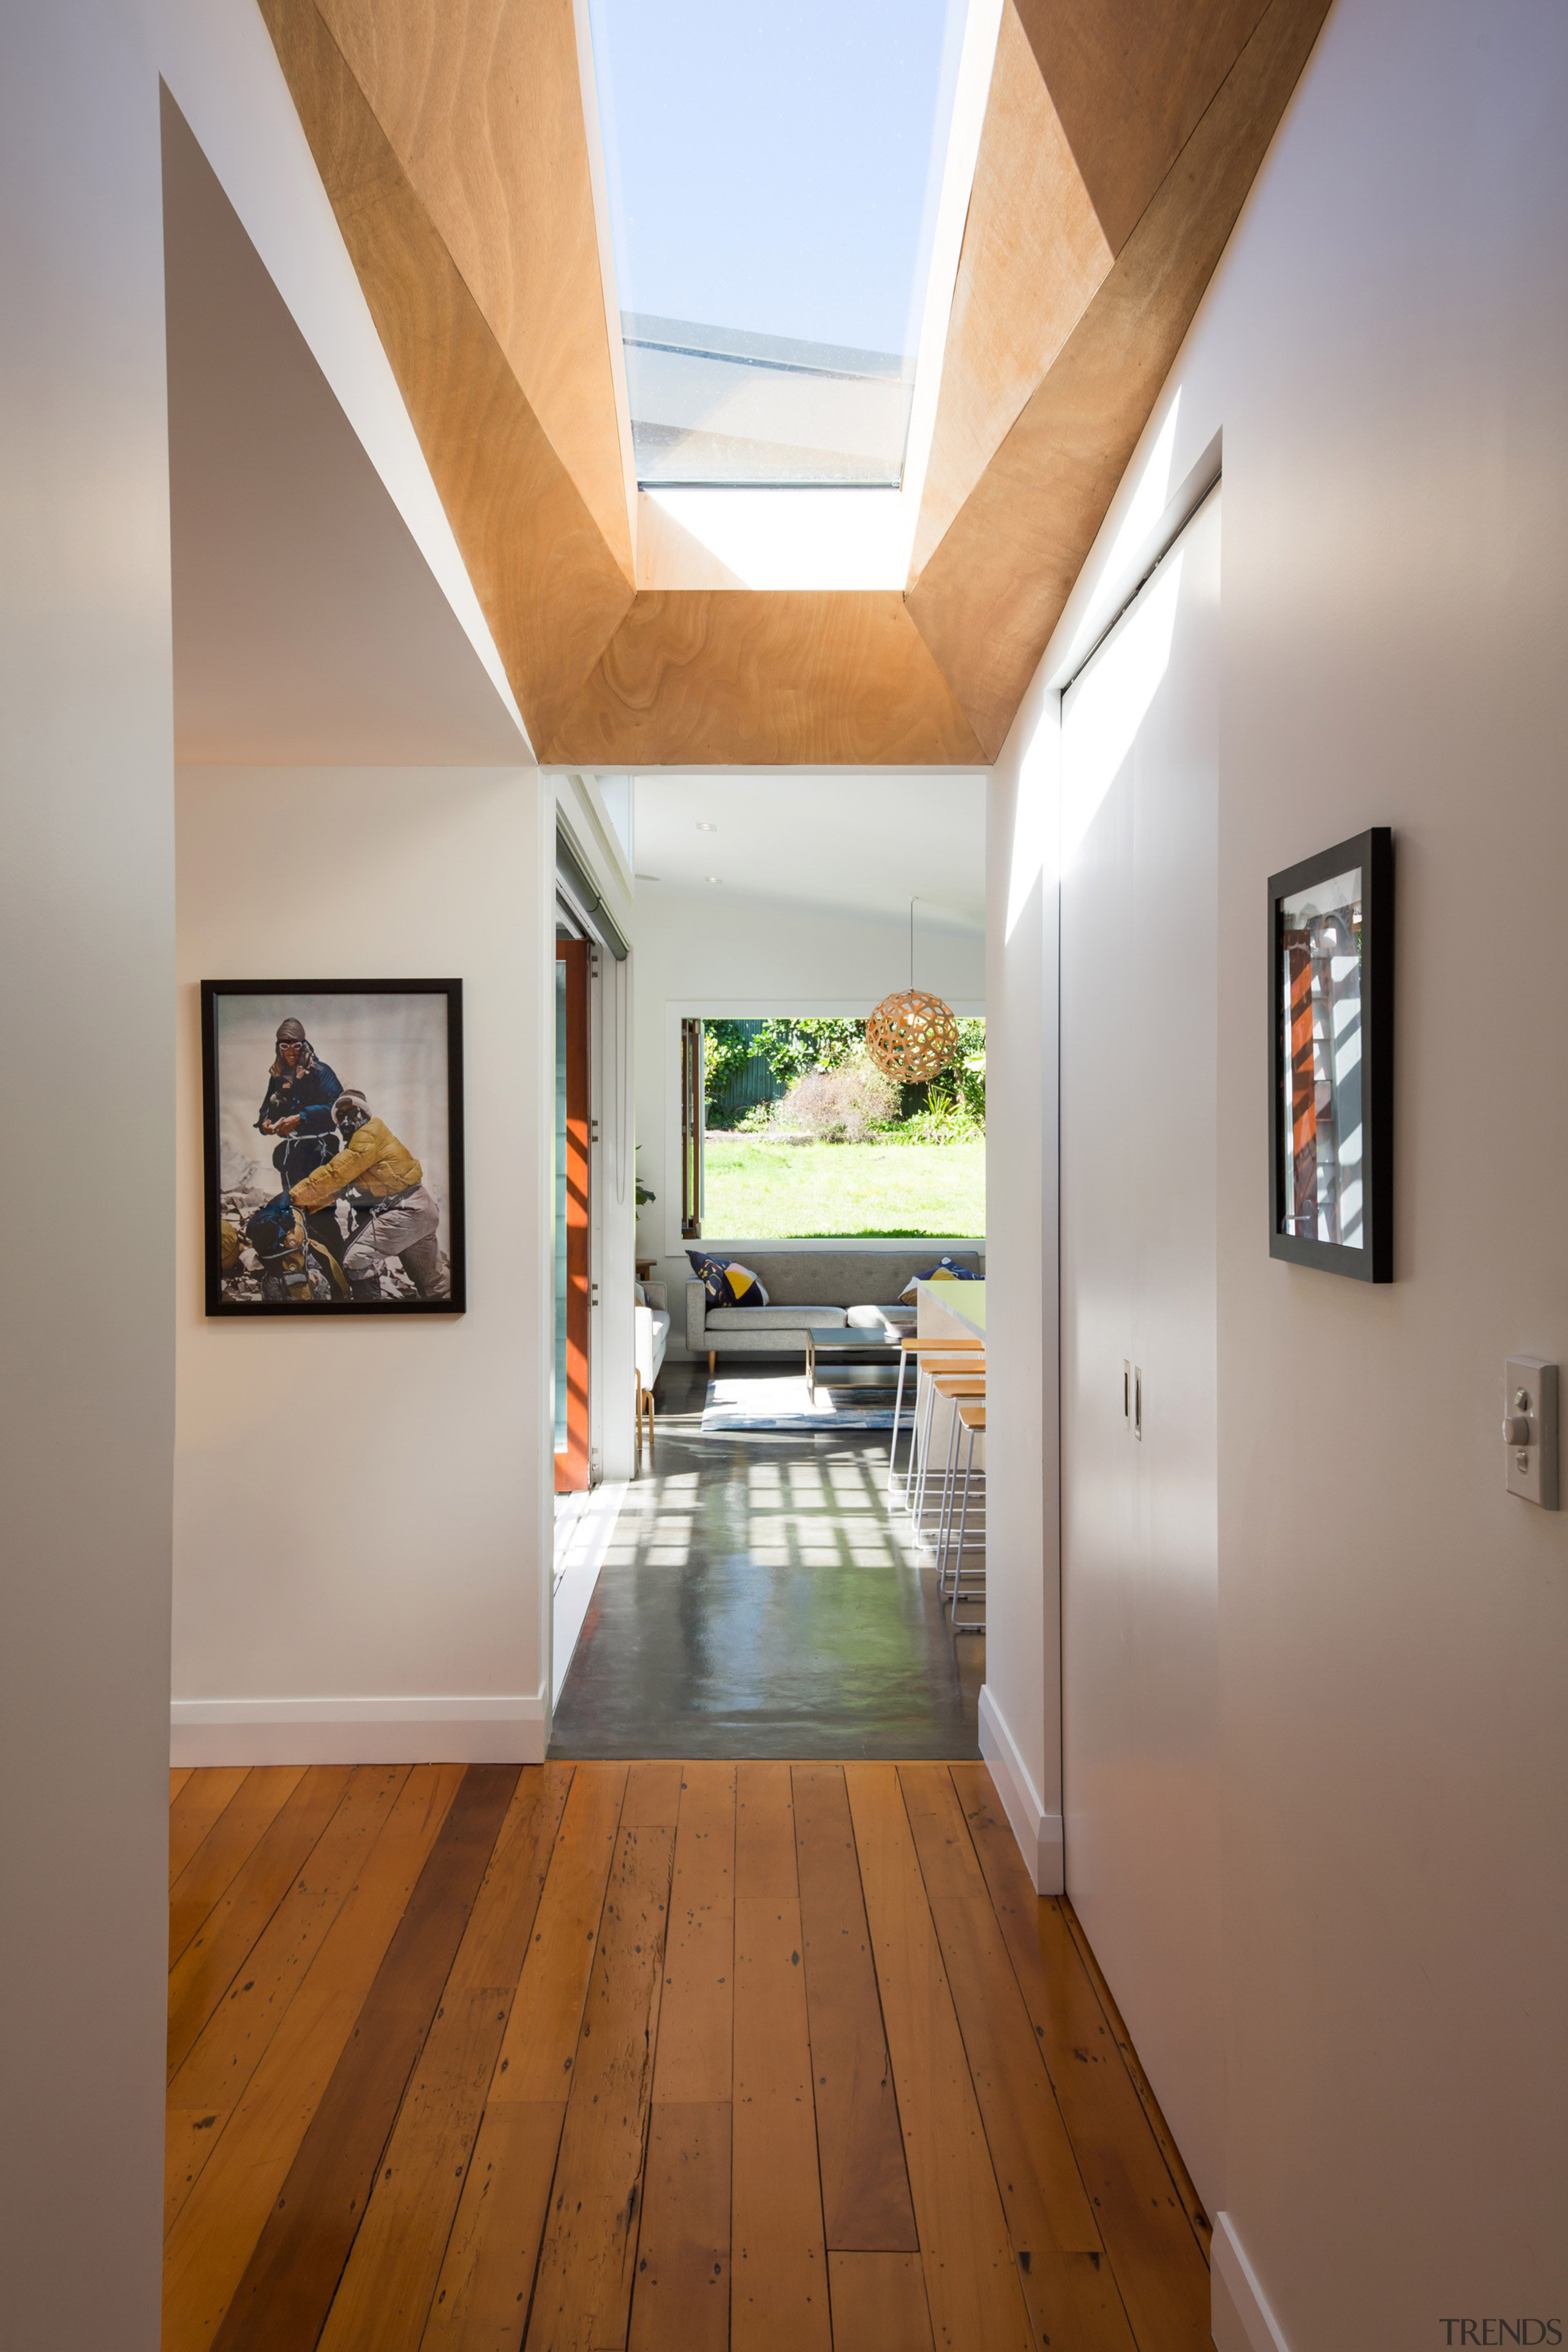 This project involved a rear addition to an architecture, ceiling, daylighting, floor, flooring, hardwood, home, house, interior design, real estate, wood, wood flooring, gray, brown